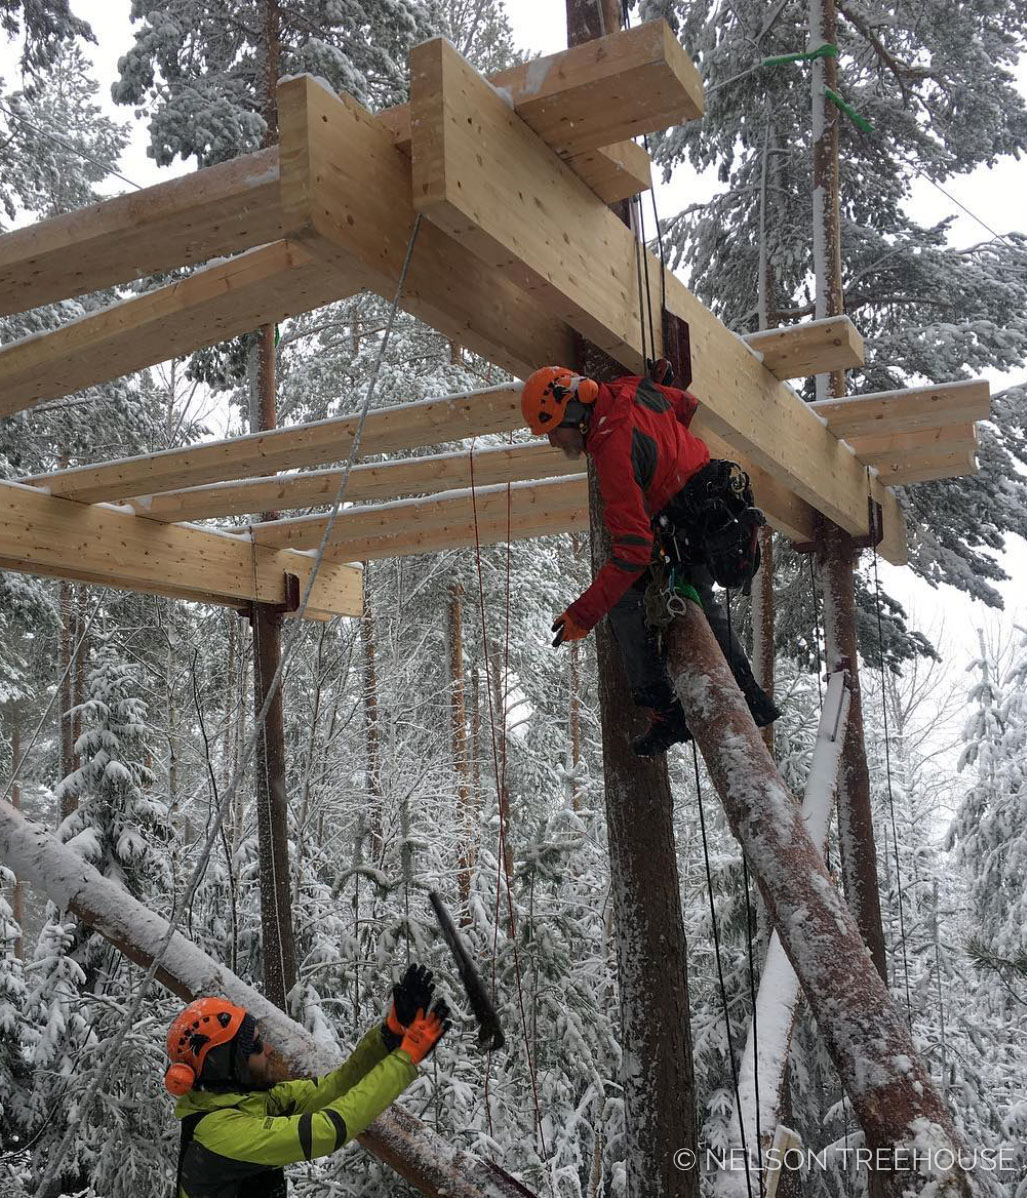 Building in Norway with my crew was a really meaningful experience.